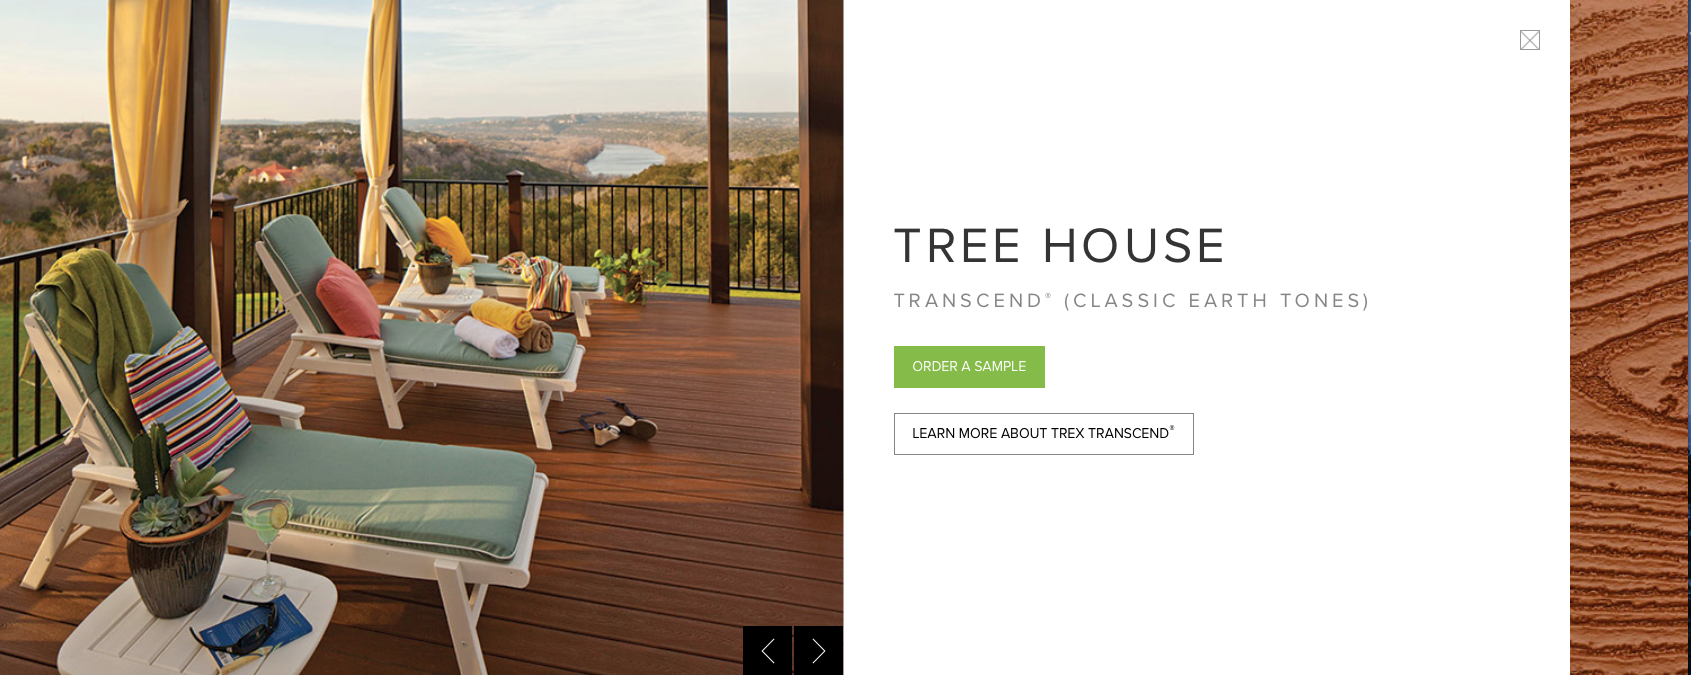 Trex Transcend (Classic Earth Tones) Tree House